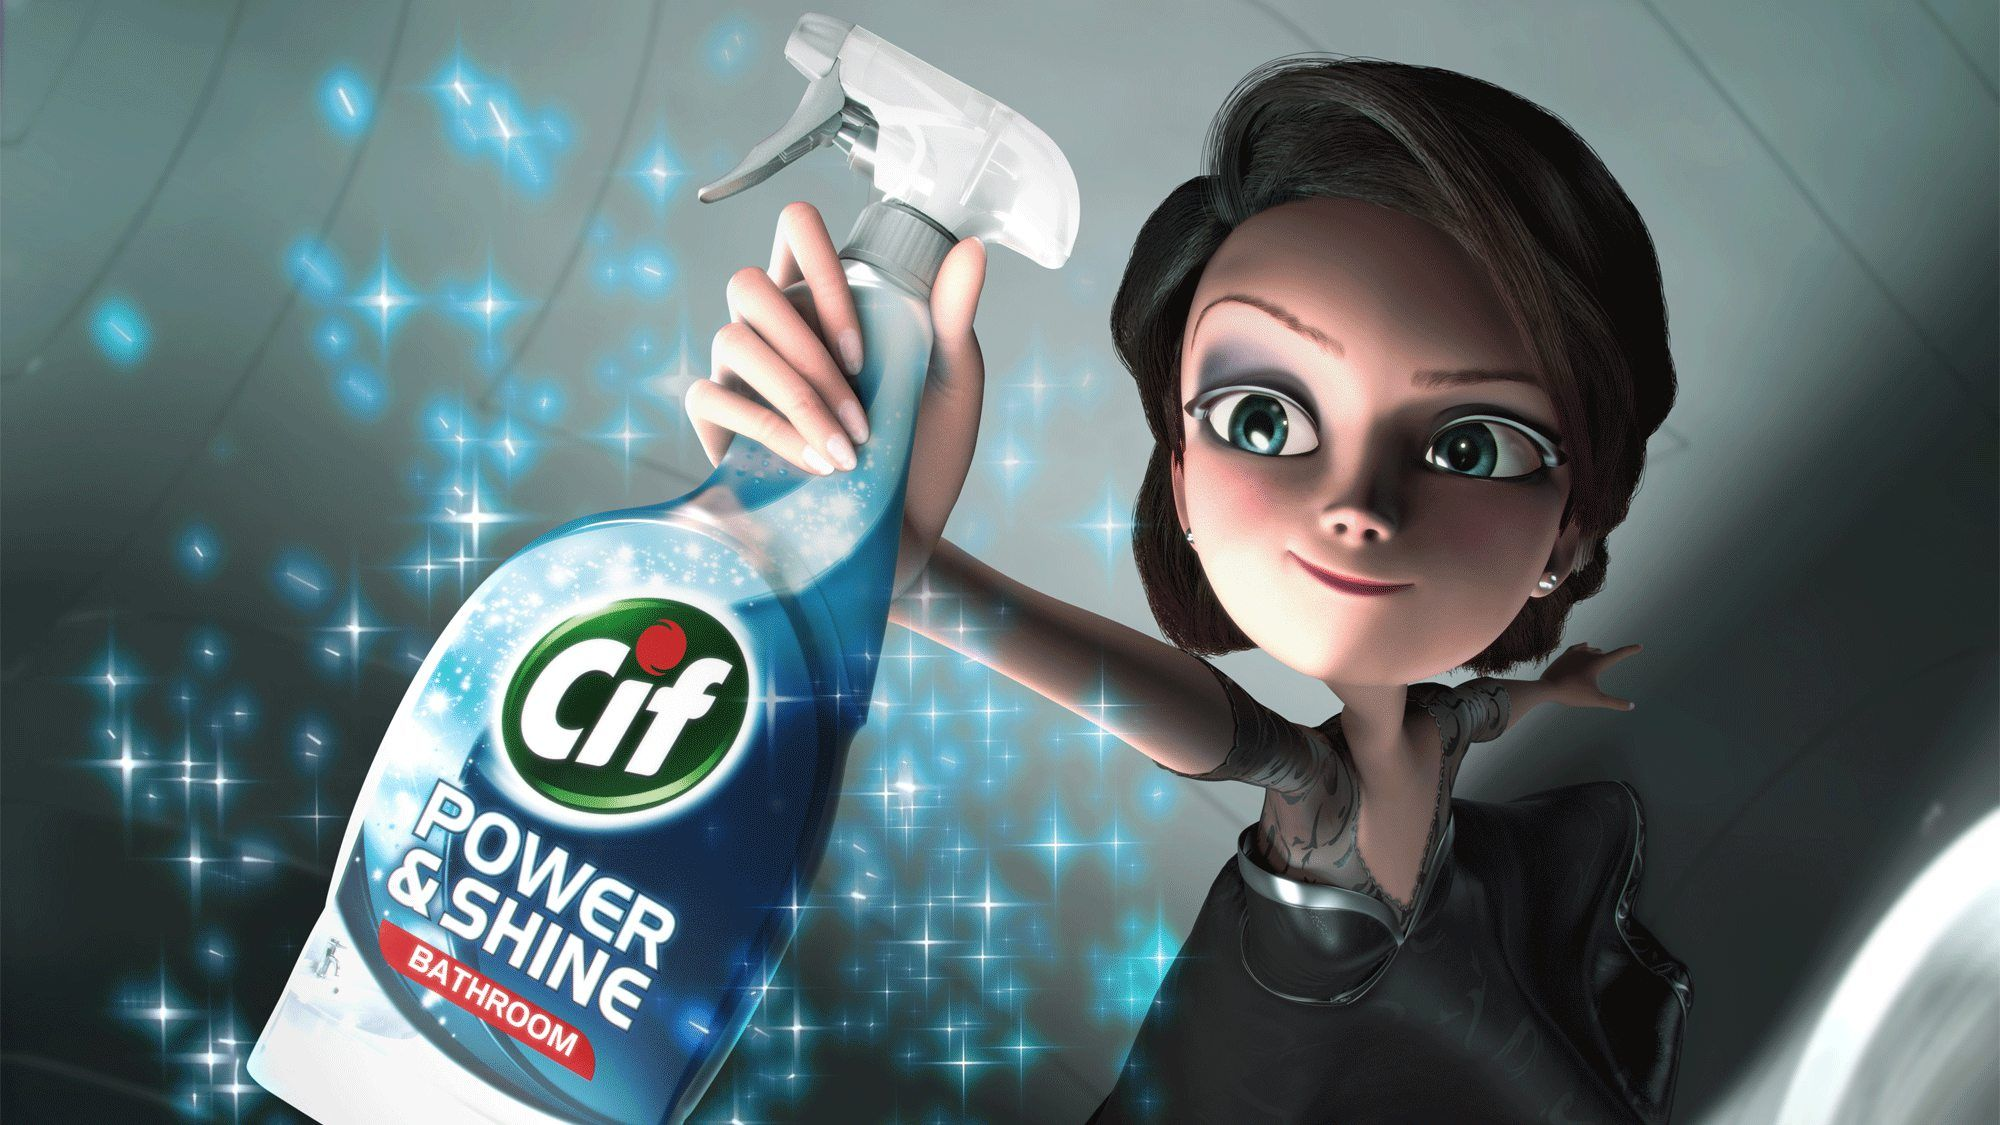 Animated Cif fairy holding cleaning spray